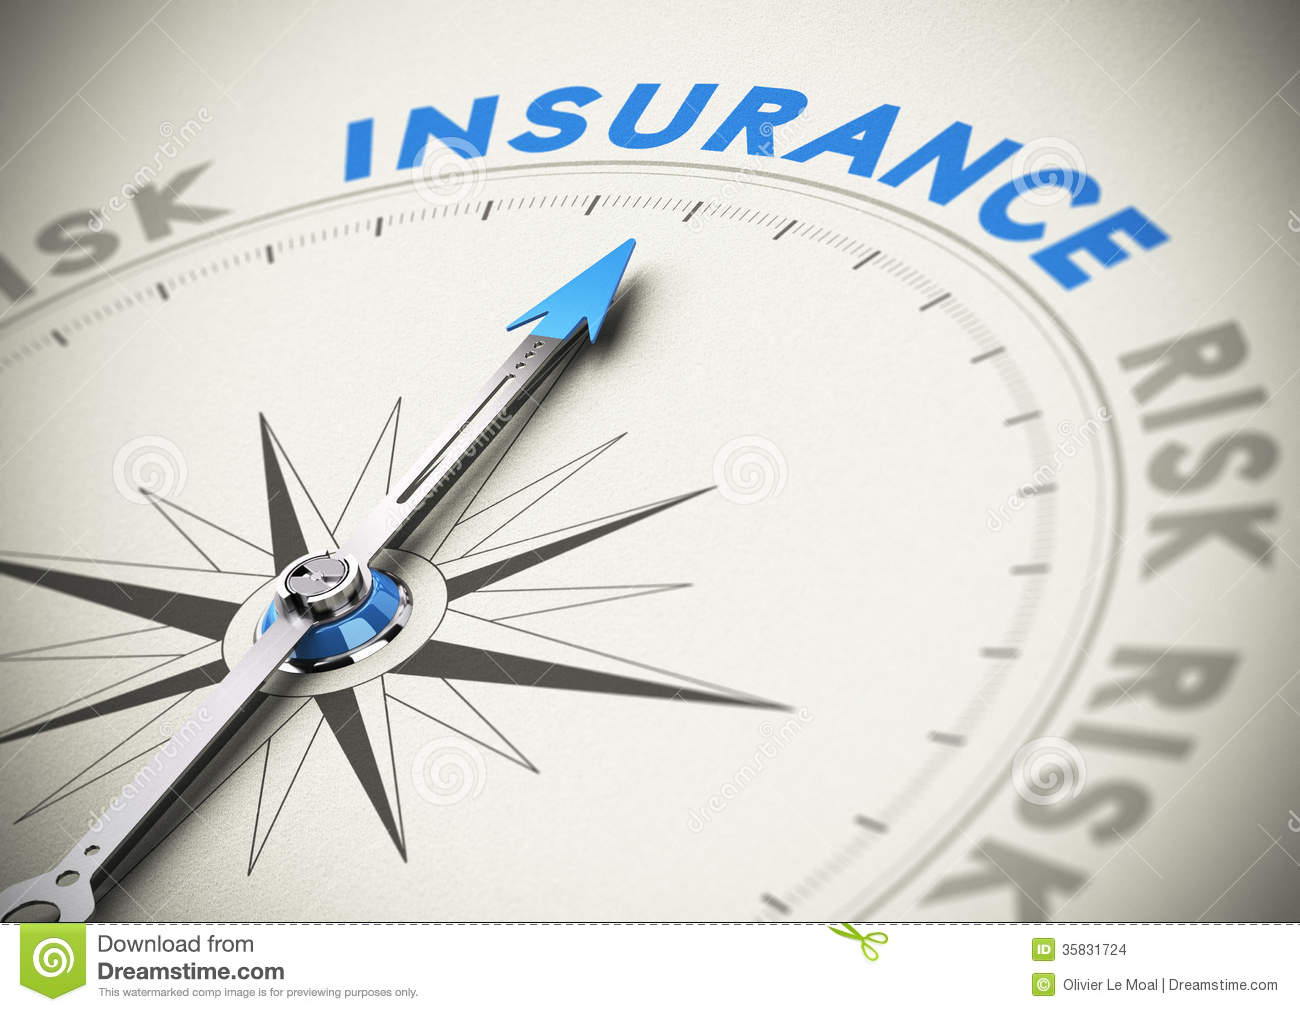 insurance-assurance-concept-compass-needle-pointing-word-image-blue-beige-tones-35831724.jpg